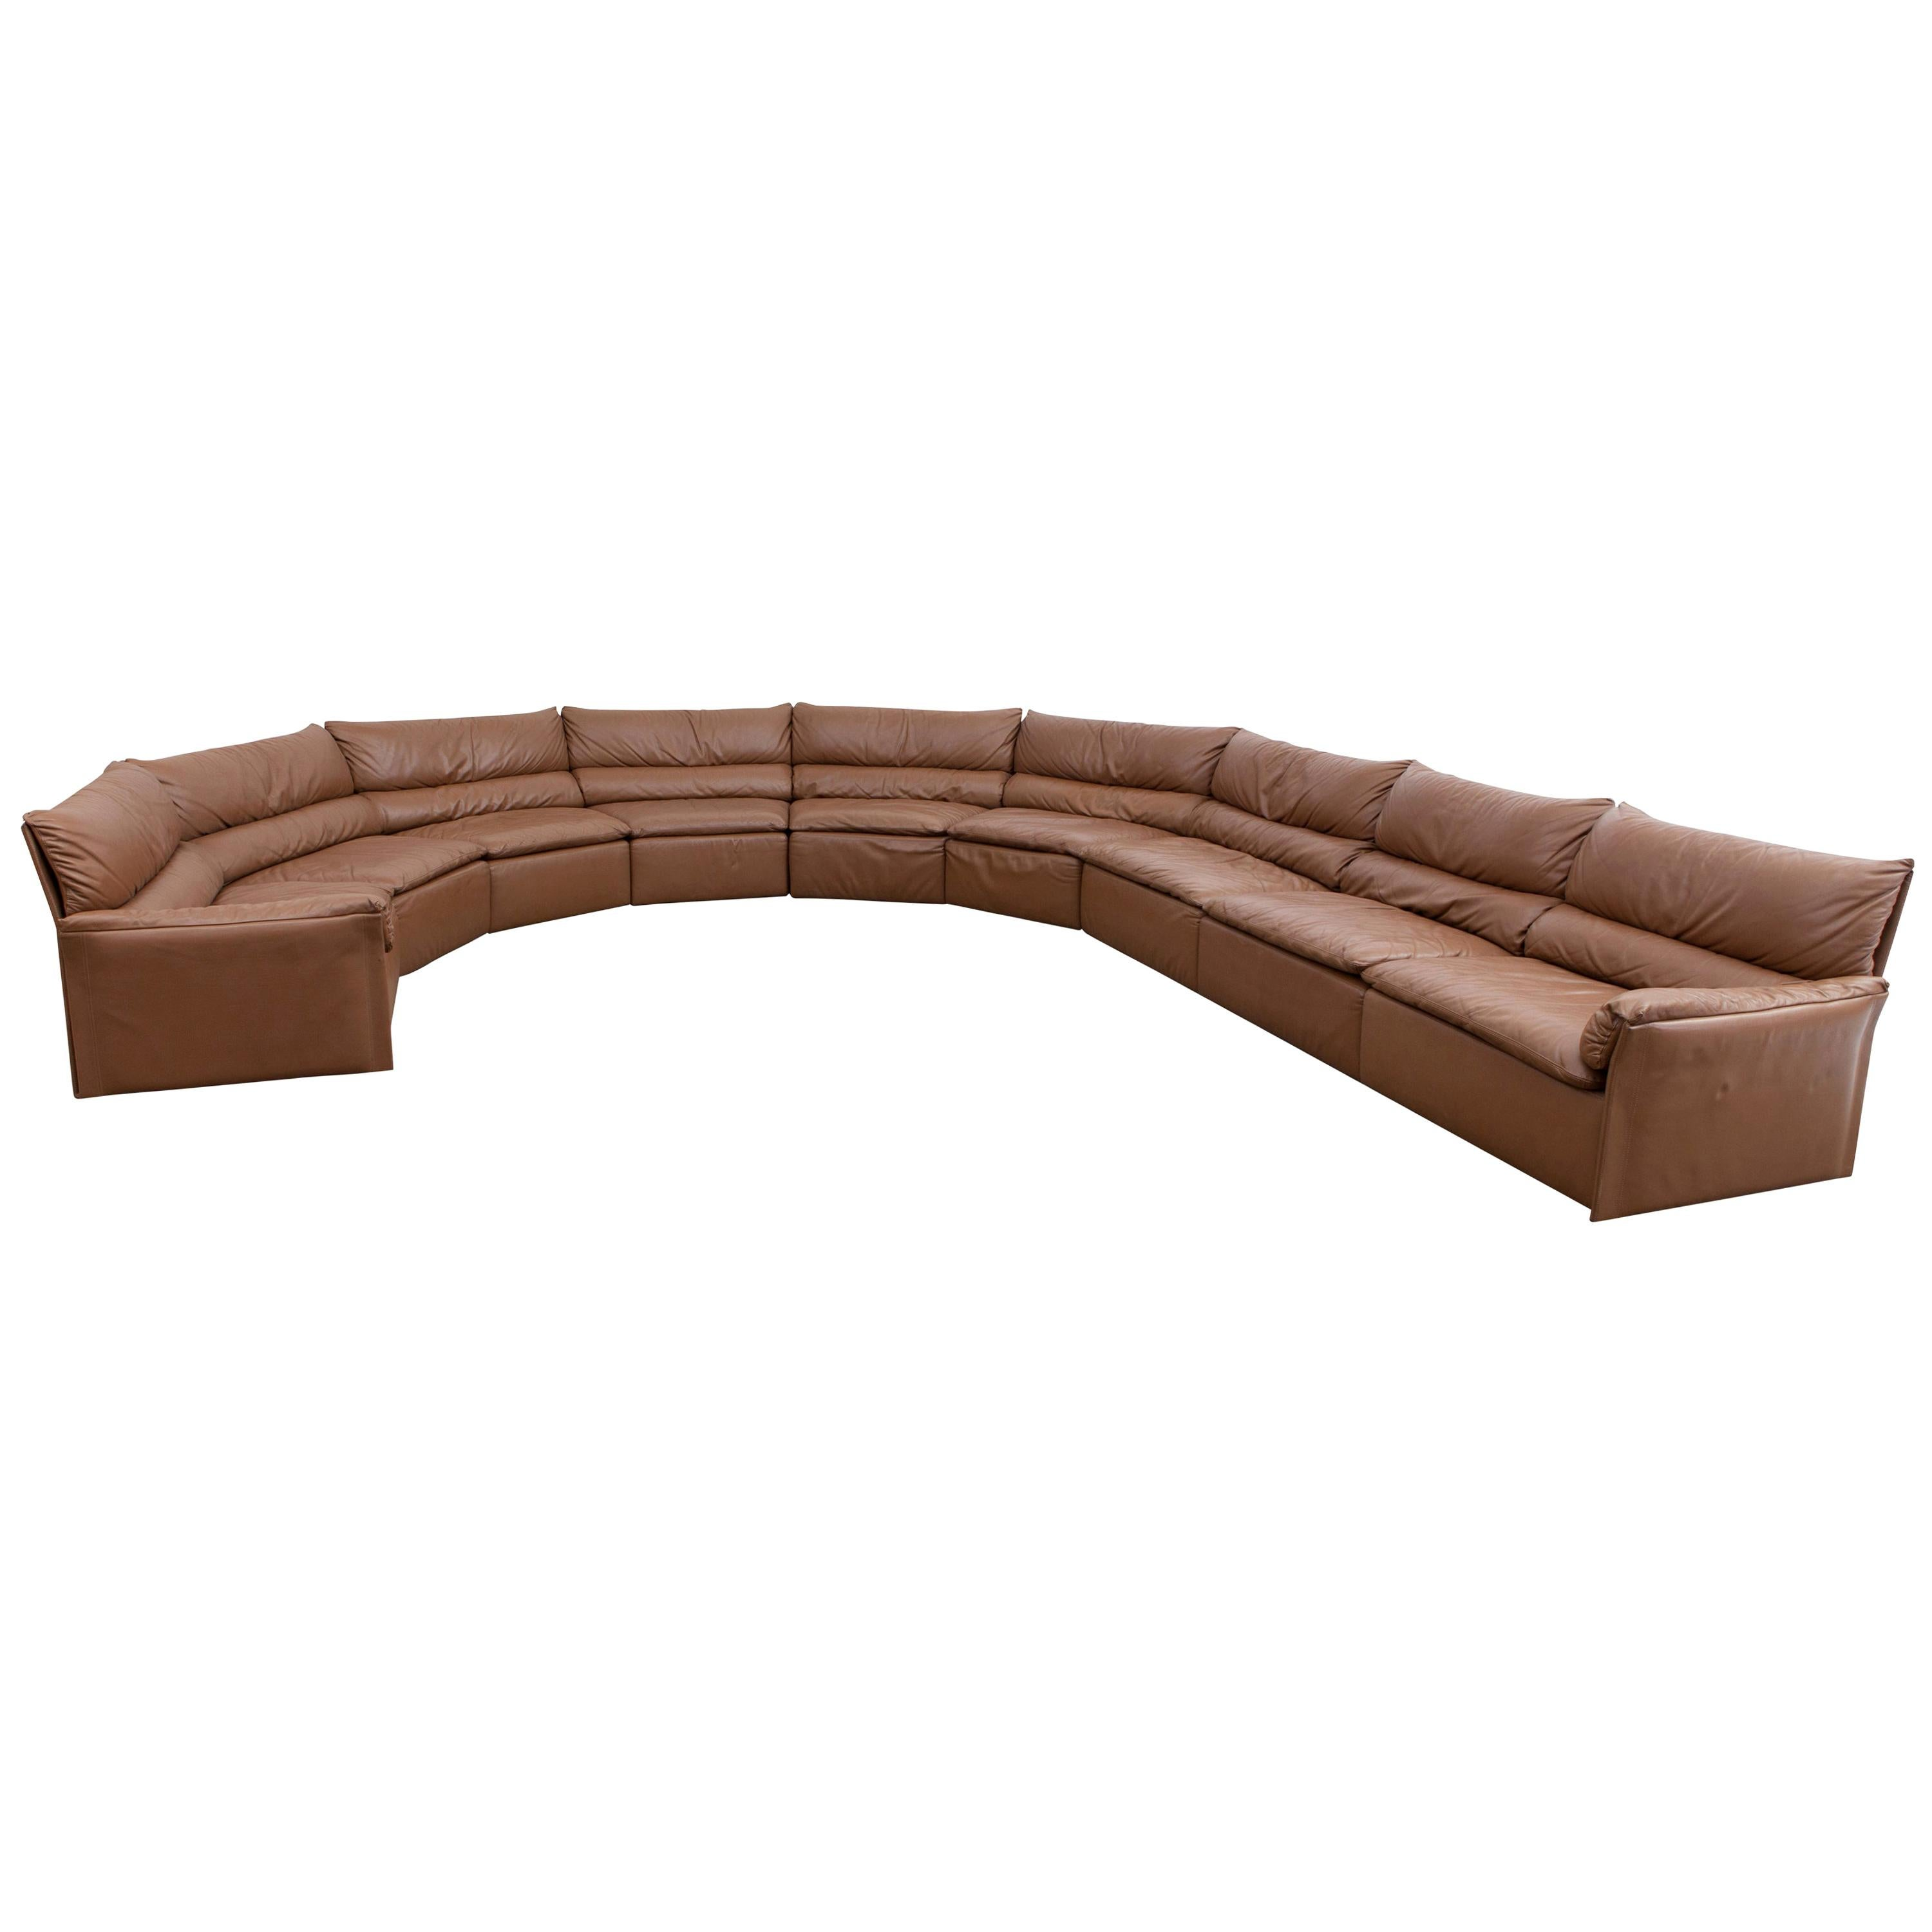 Saporiti Brown Leather Sectional Sofa, Italy, 1960s